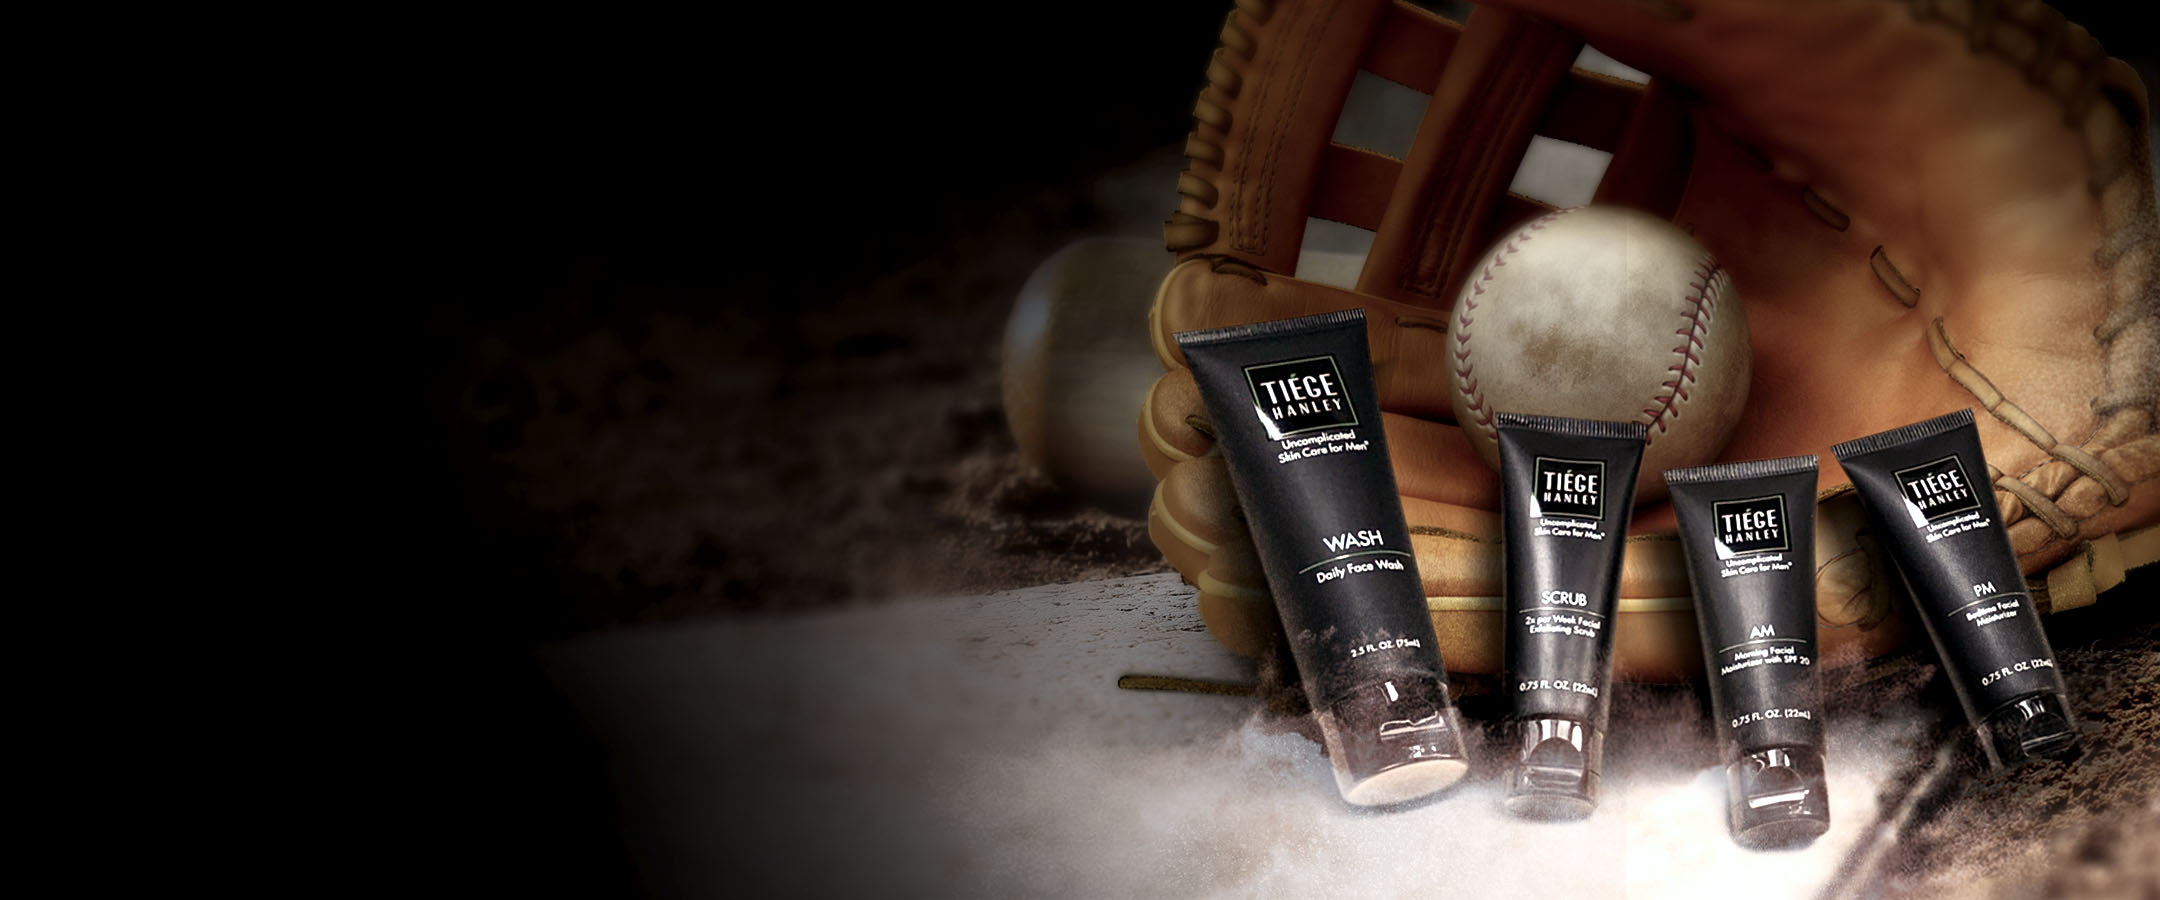 Your skin doesn't have to be as rough as your mitt